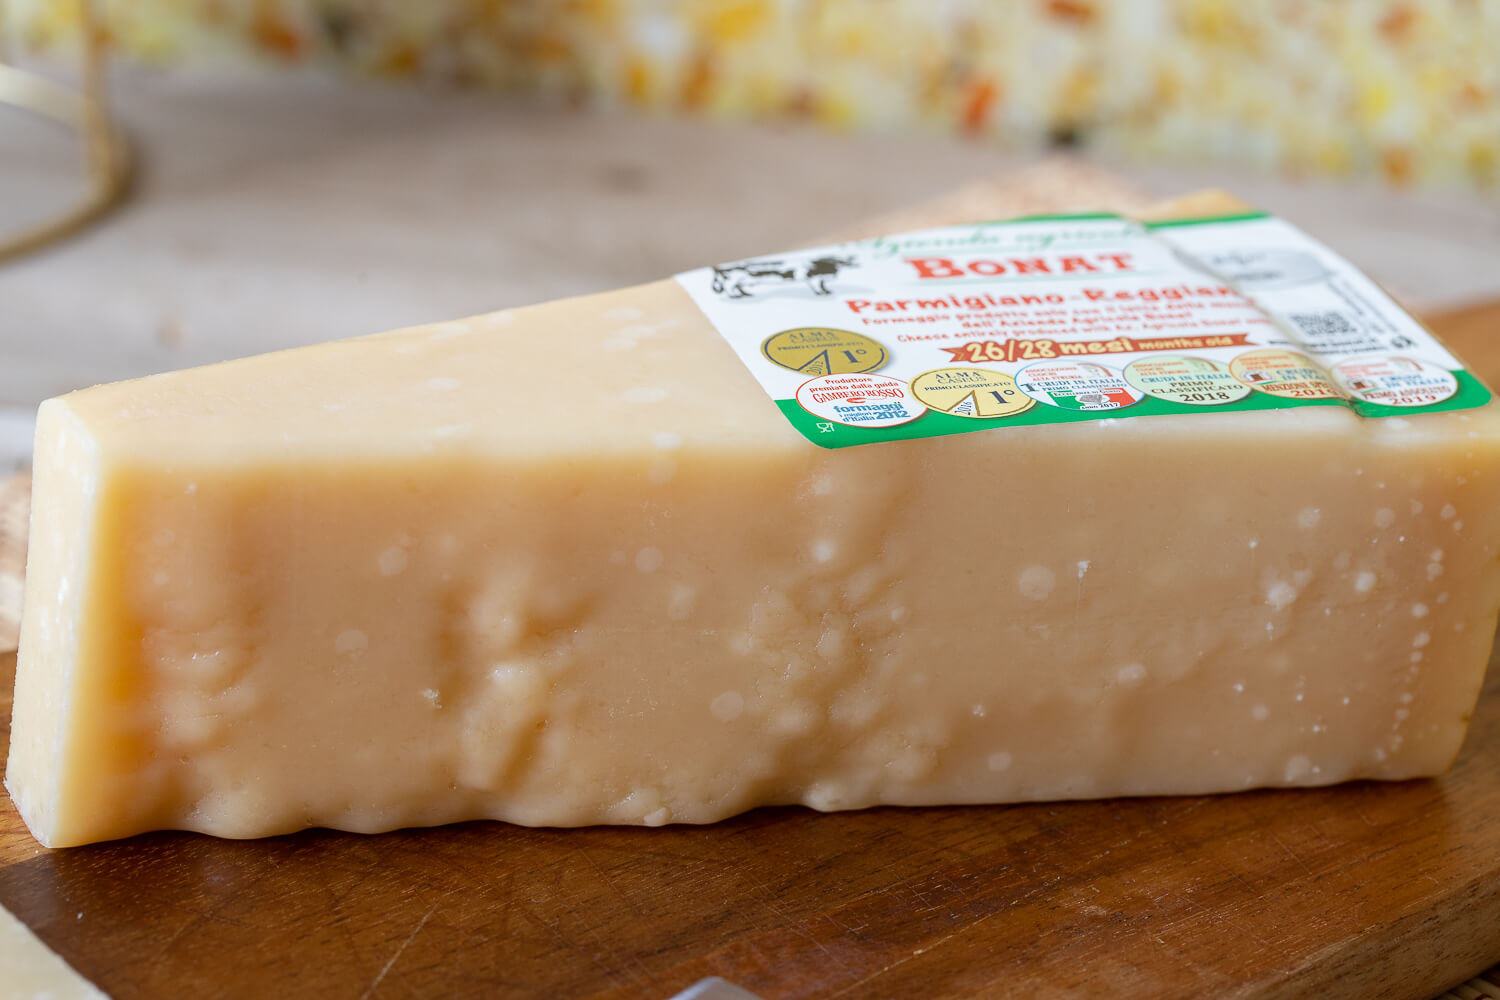 Parmigiano Reggiano aged cheese 26/28 months